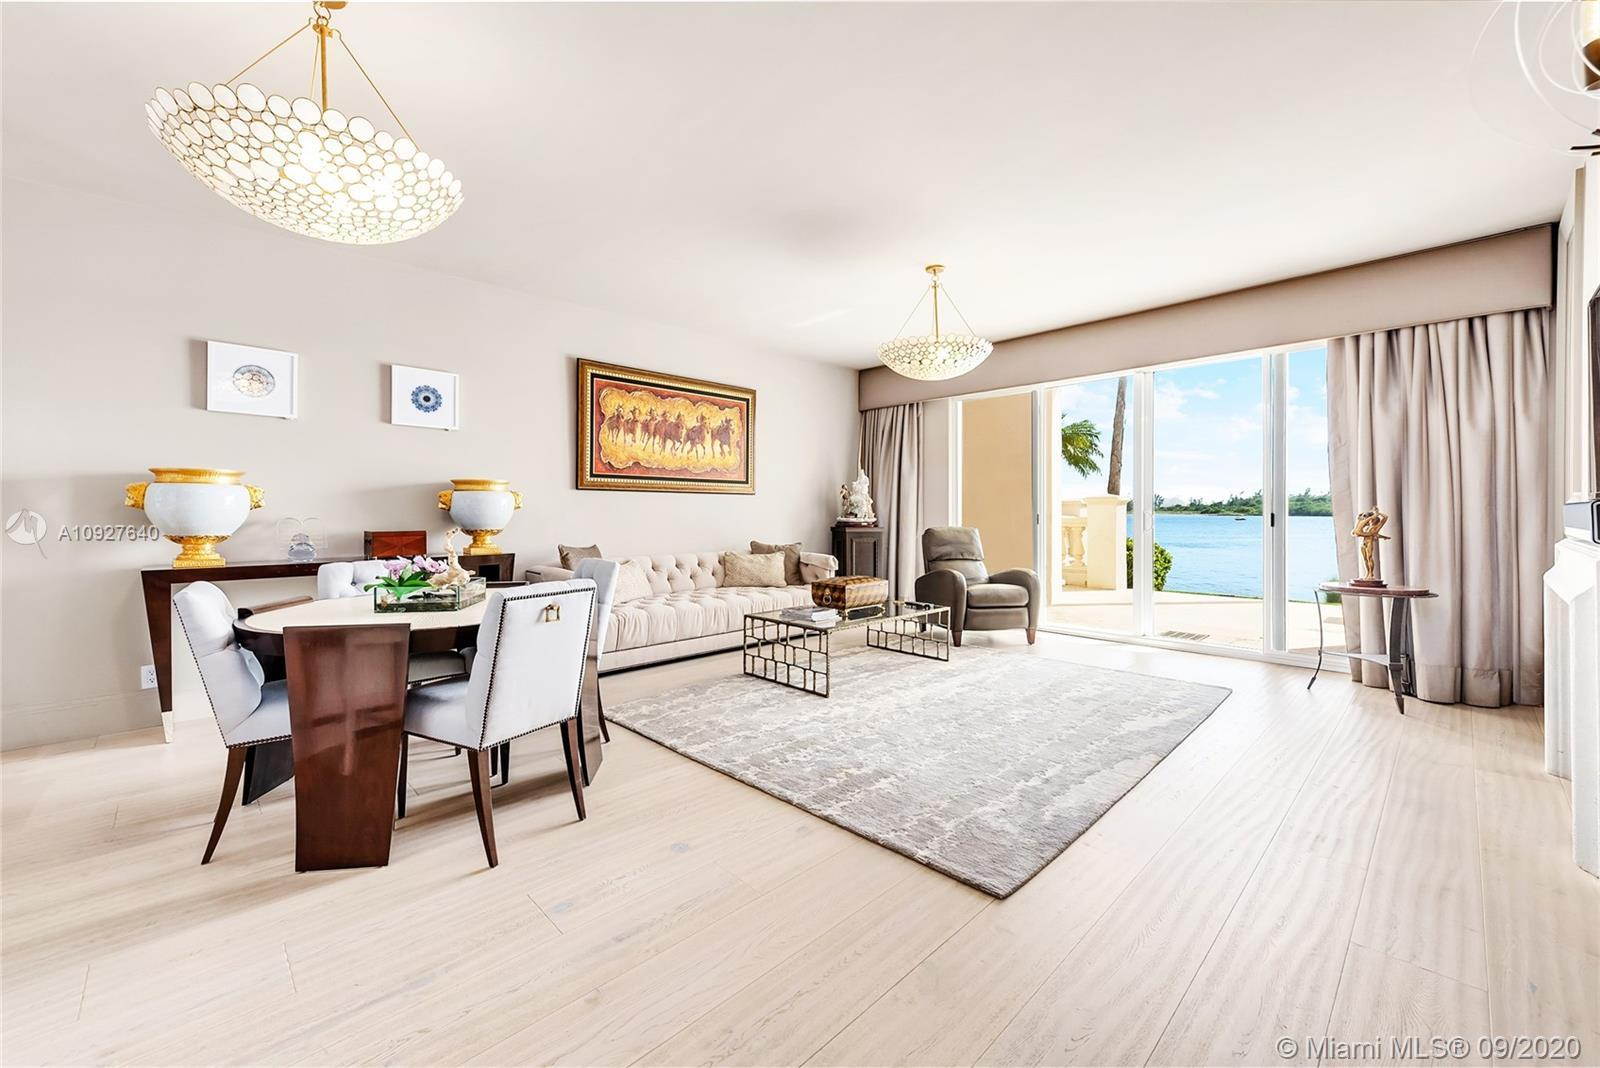 This contemporary, 1st floor condo on exclusive Fisher Island is impeccably decorated and has underg